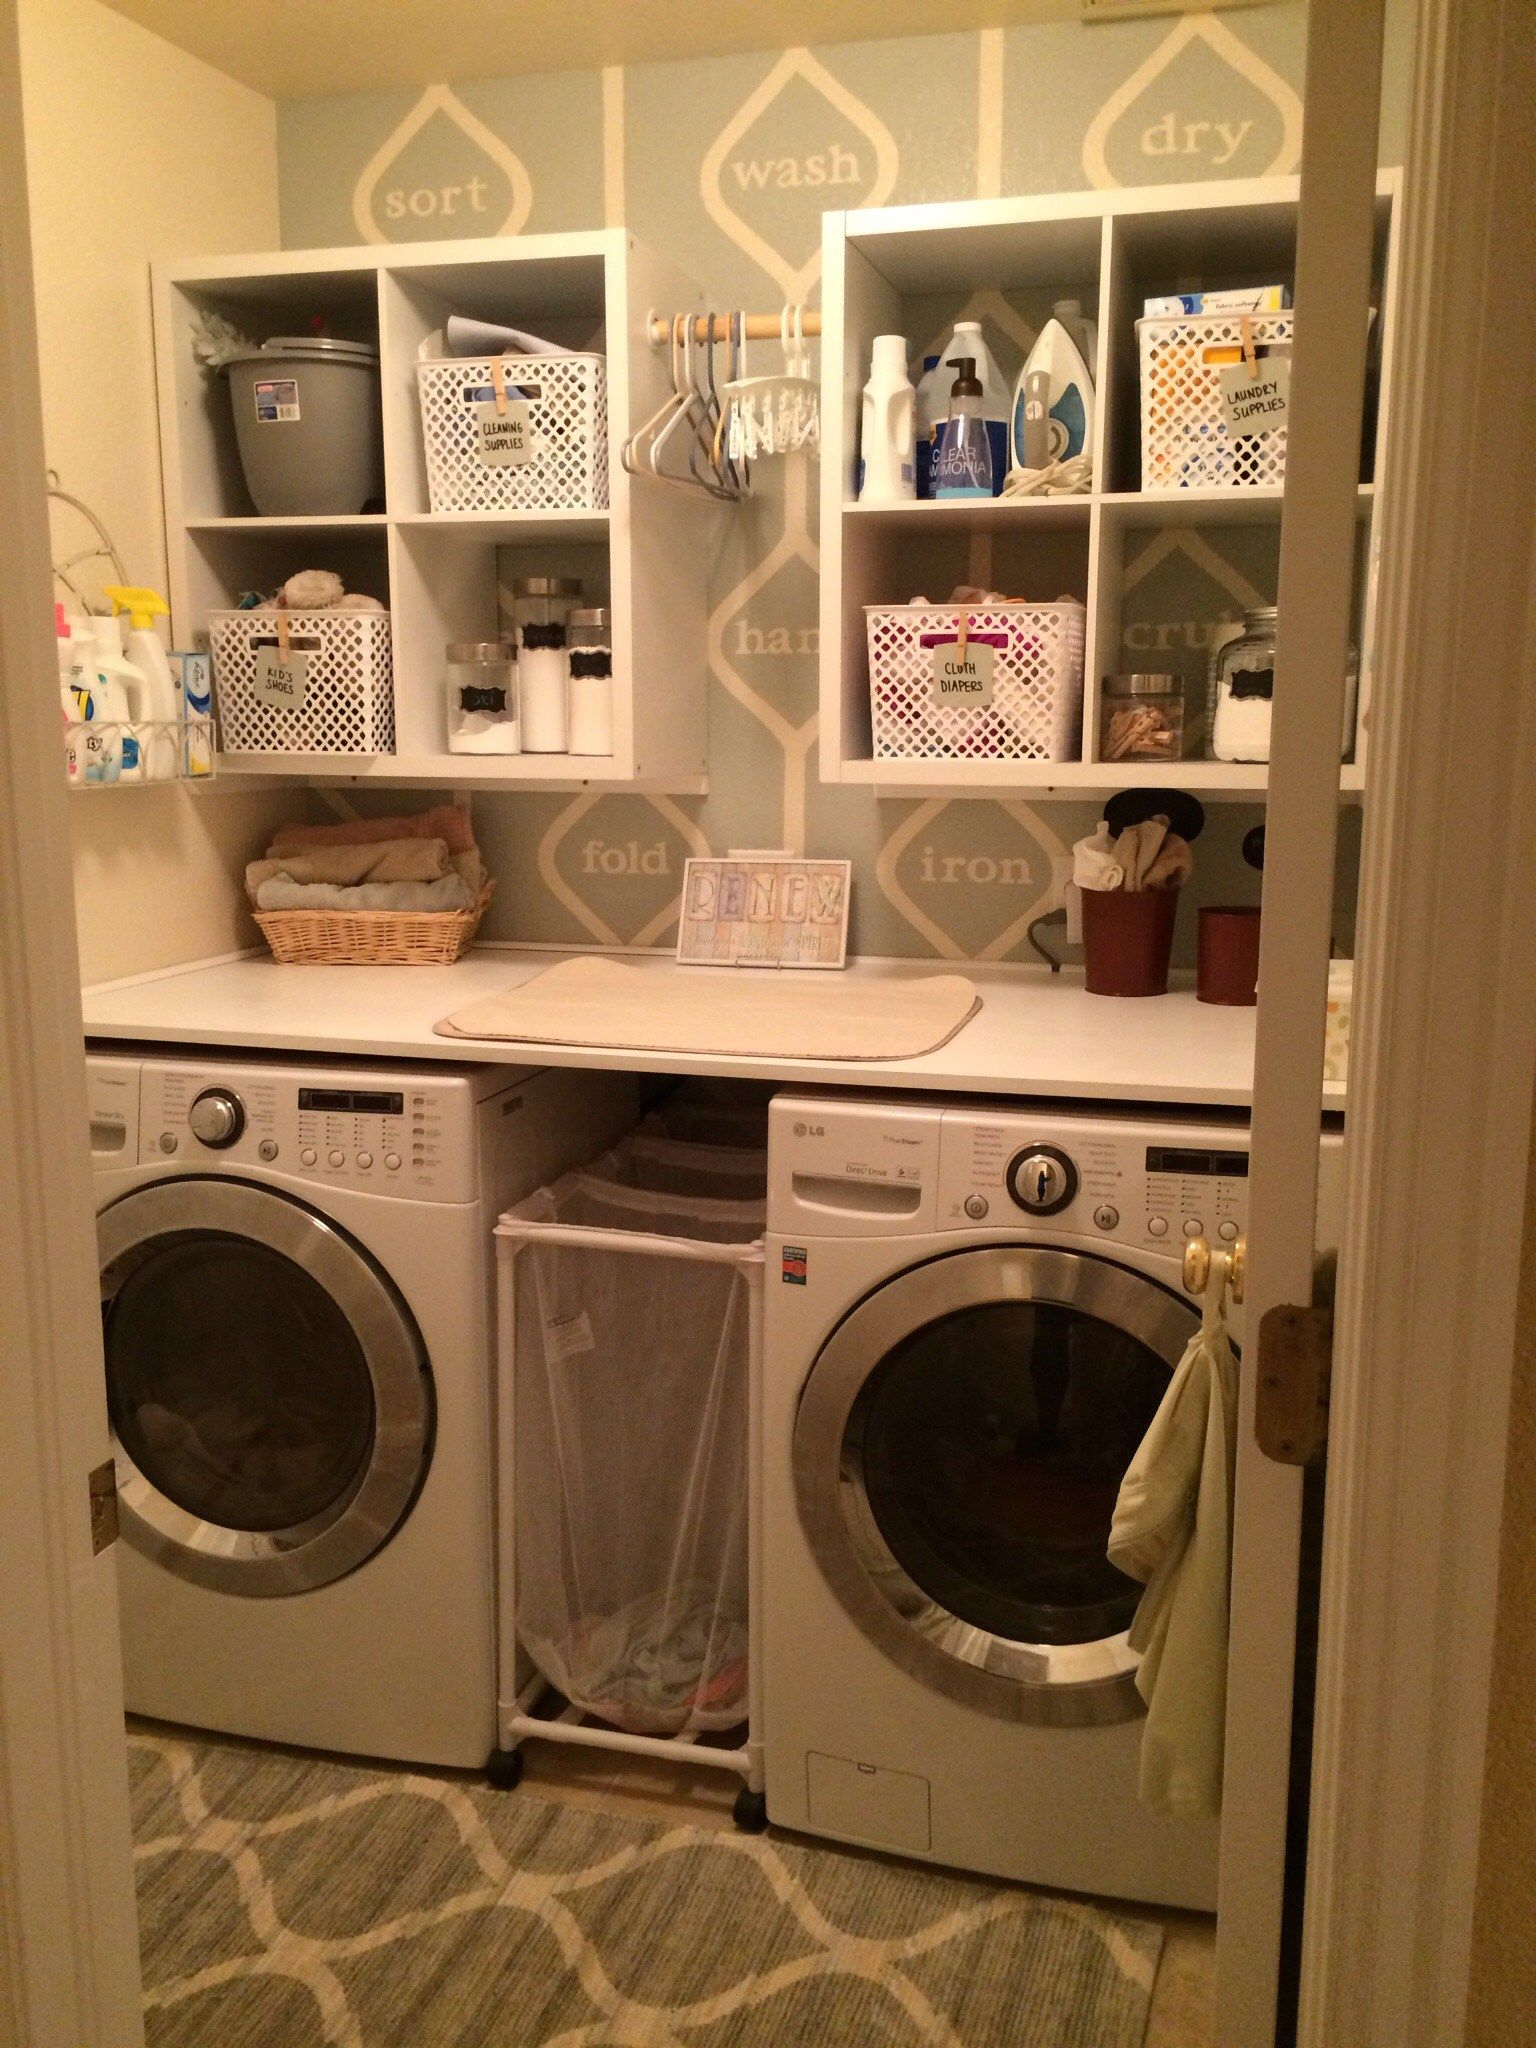 Design Your Own Laundry Room: Paint Your Own Laundry Room Word Wall Using Painter's Tape